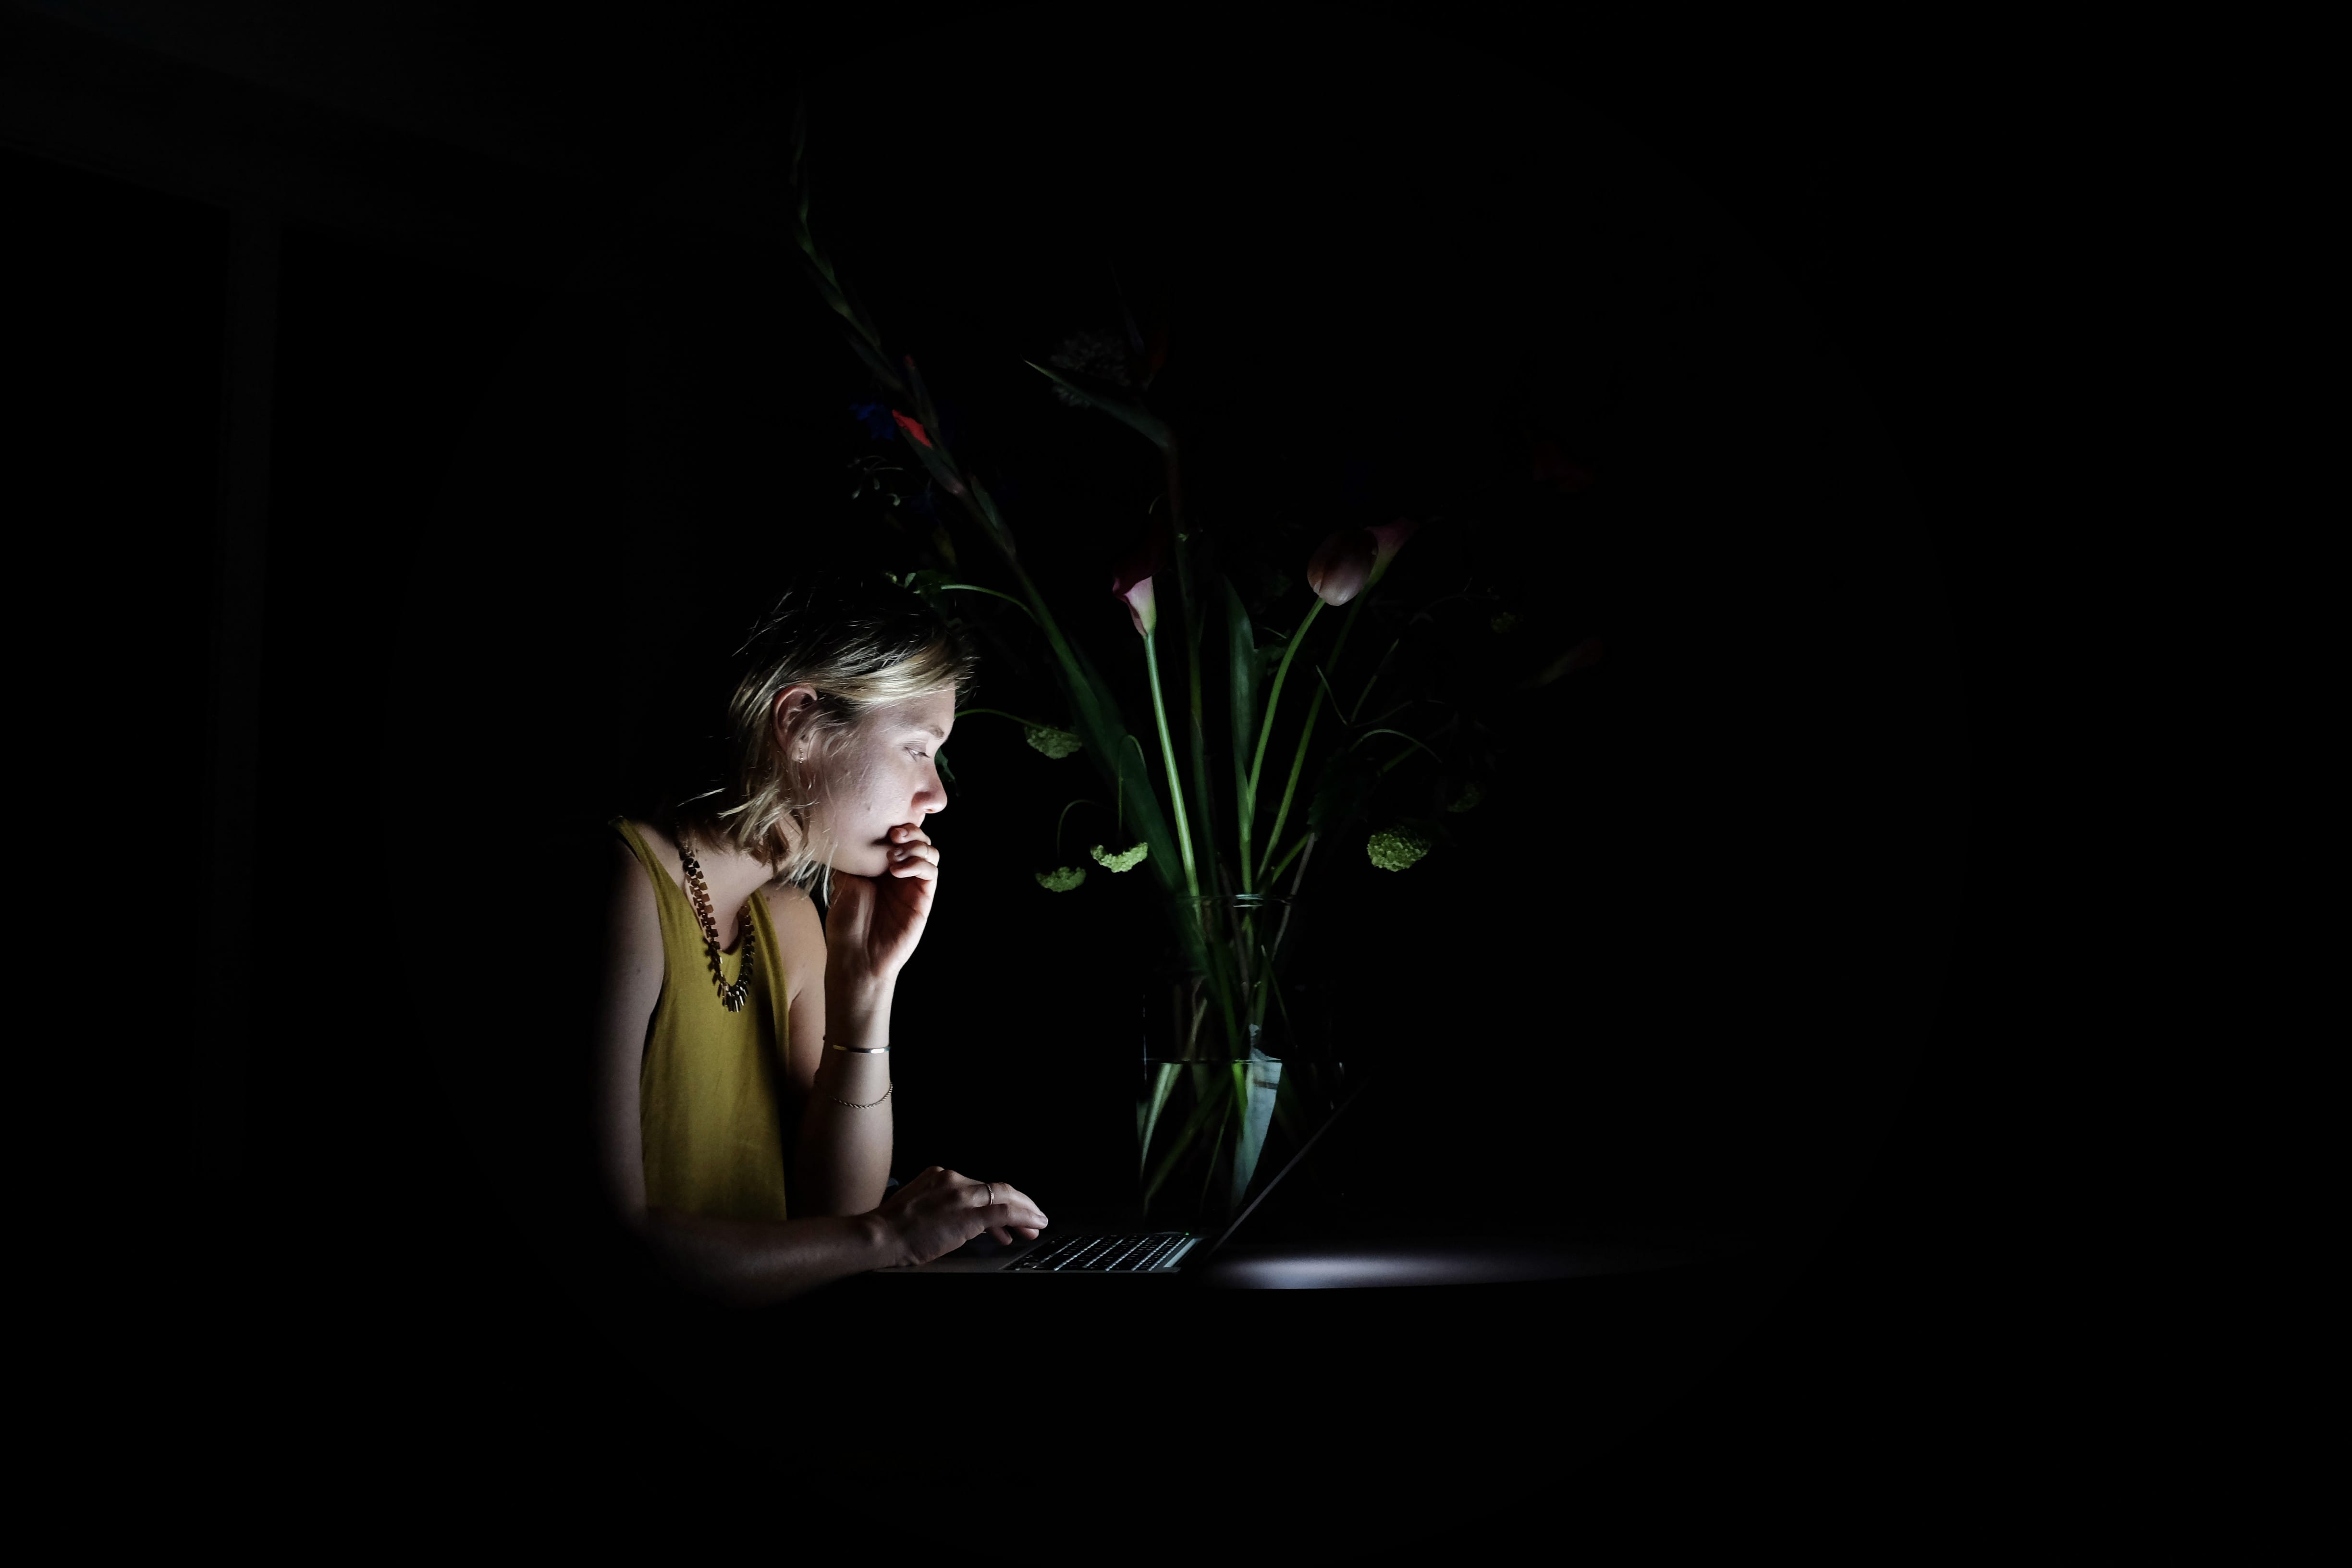 Woman sitting in a dark room using laptop her face is illuminated by the screen stock photograph by Jaime Muñoz EyeEm